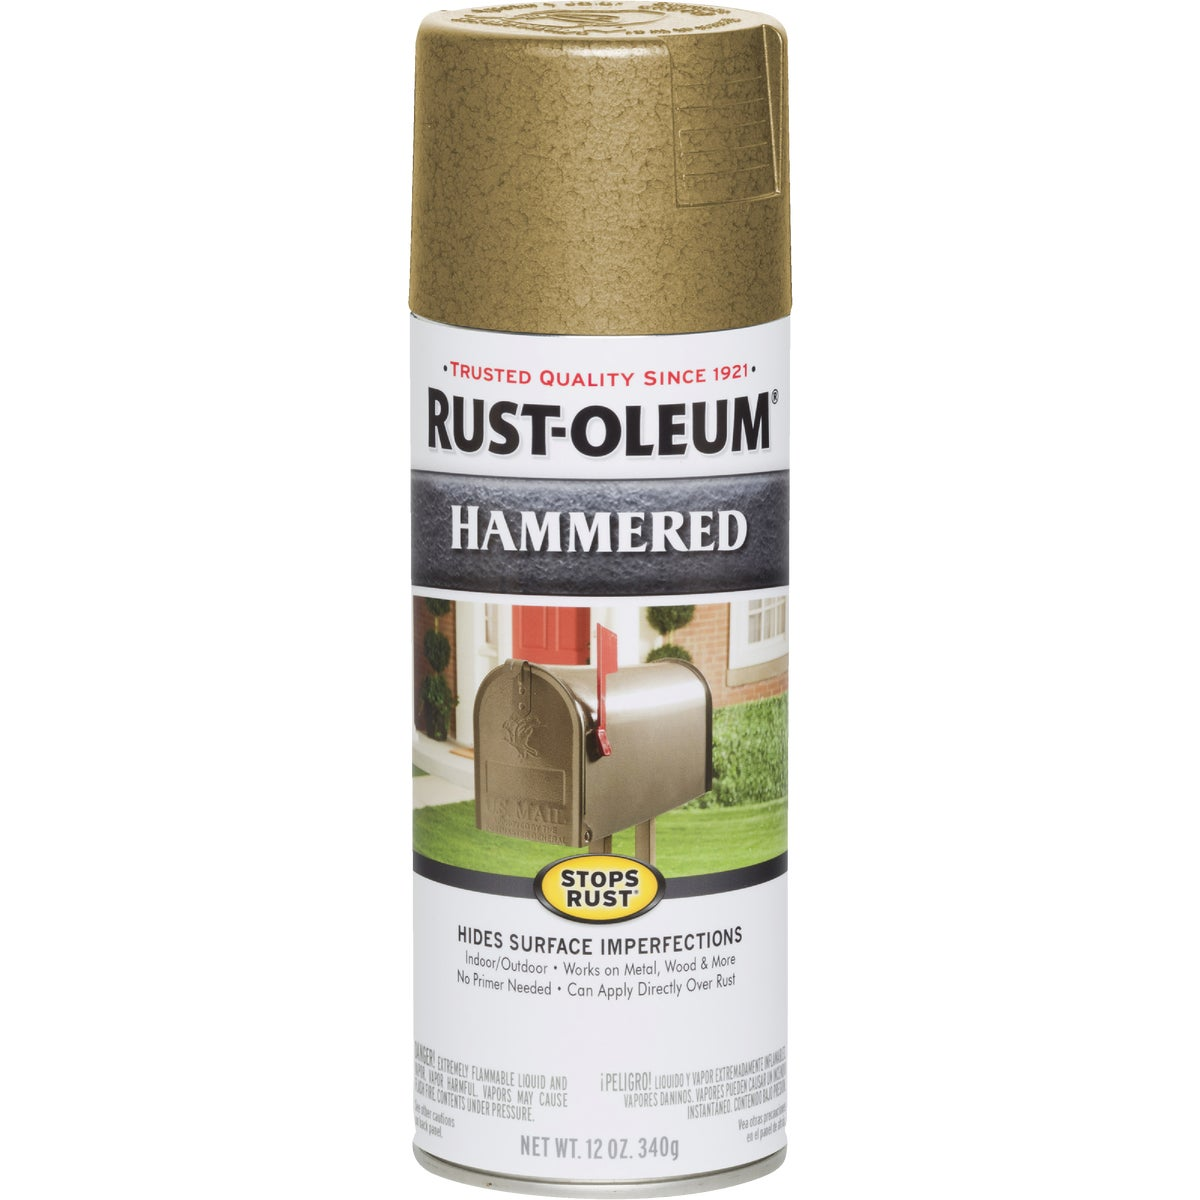 GOLD HAMMERD SPRAY PAINT - 7210-830 by Rustoleum